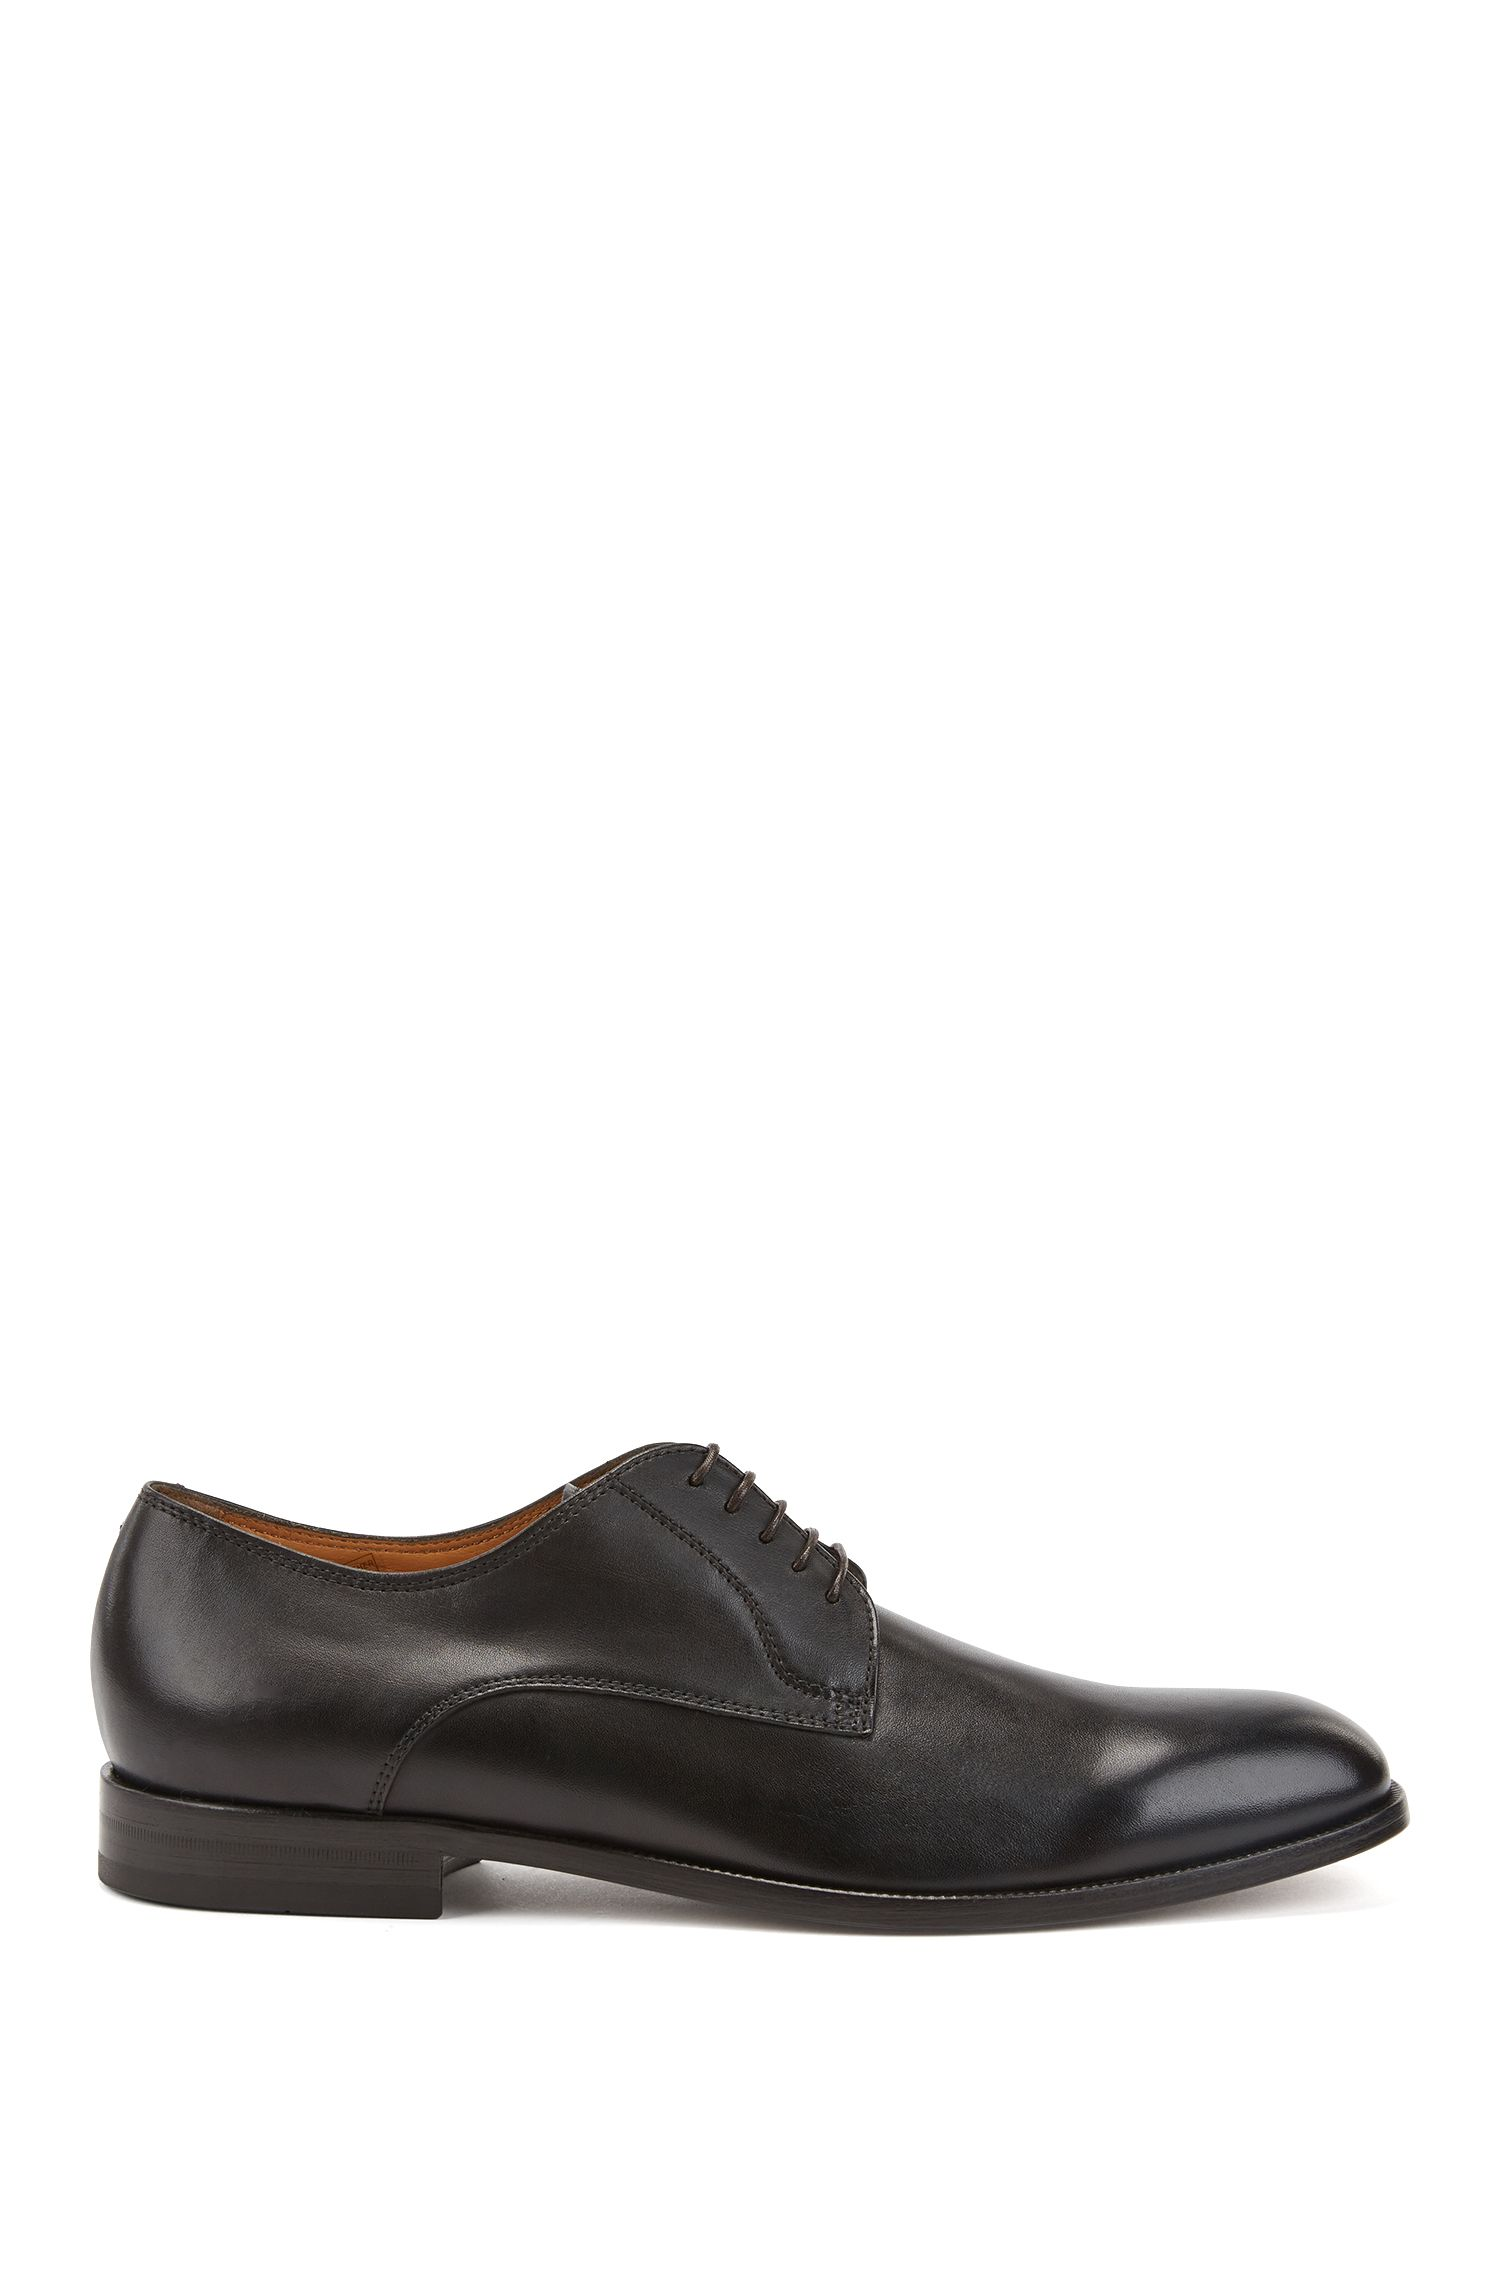 Italian-made Derby shoes in smooth calf leather